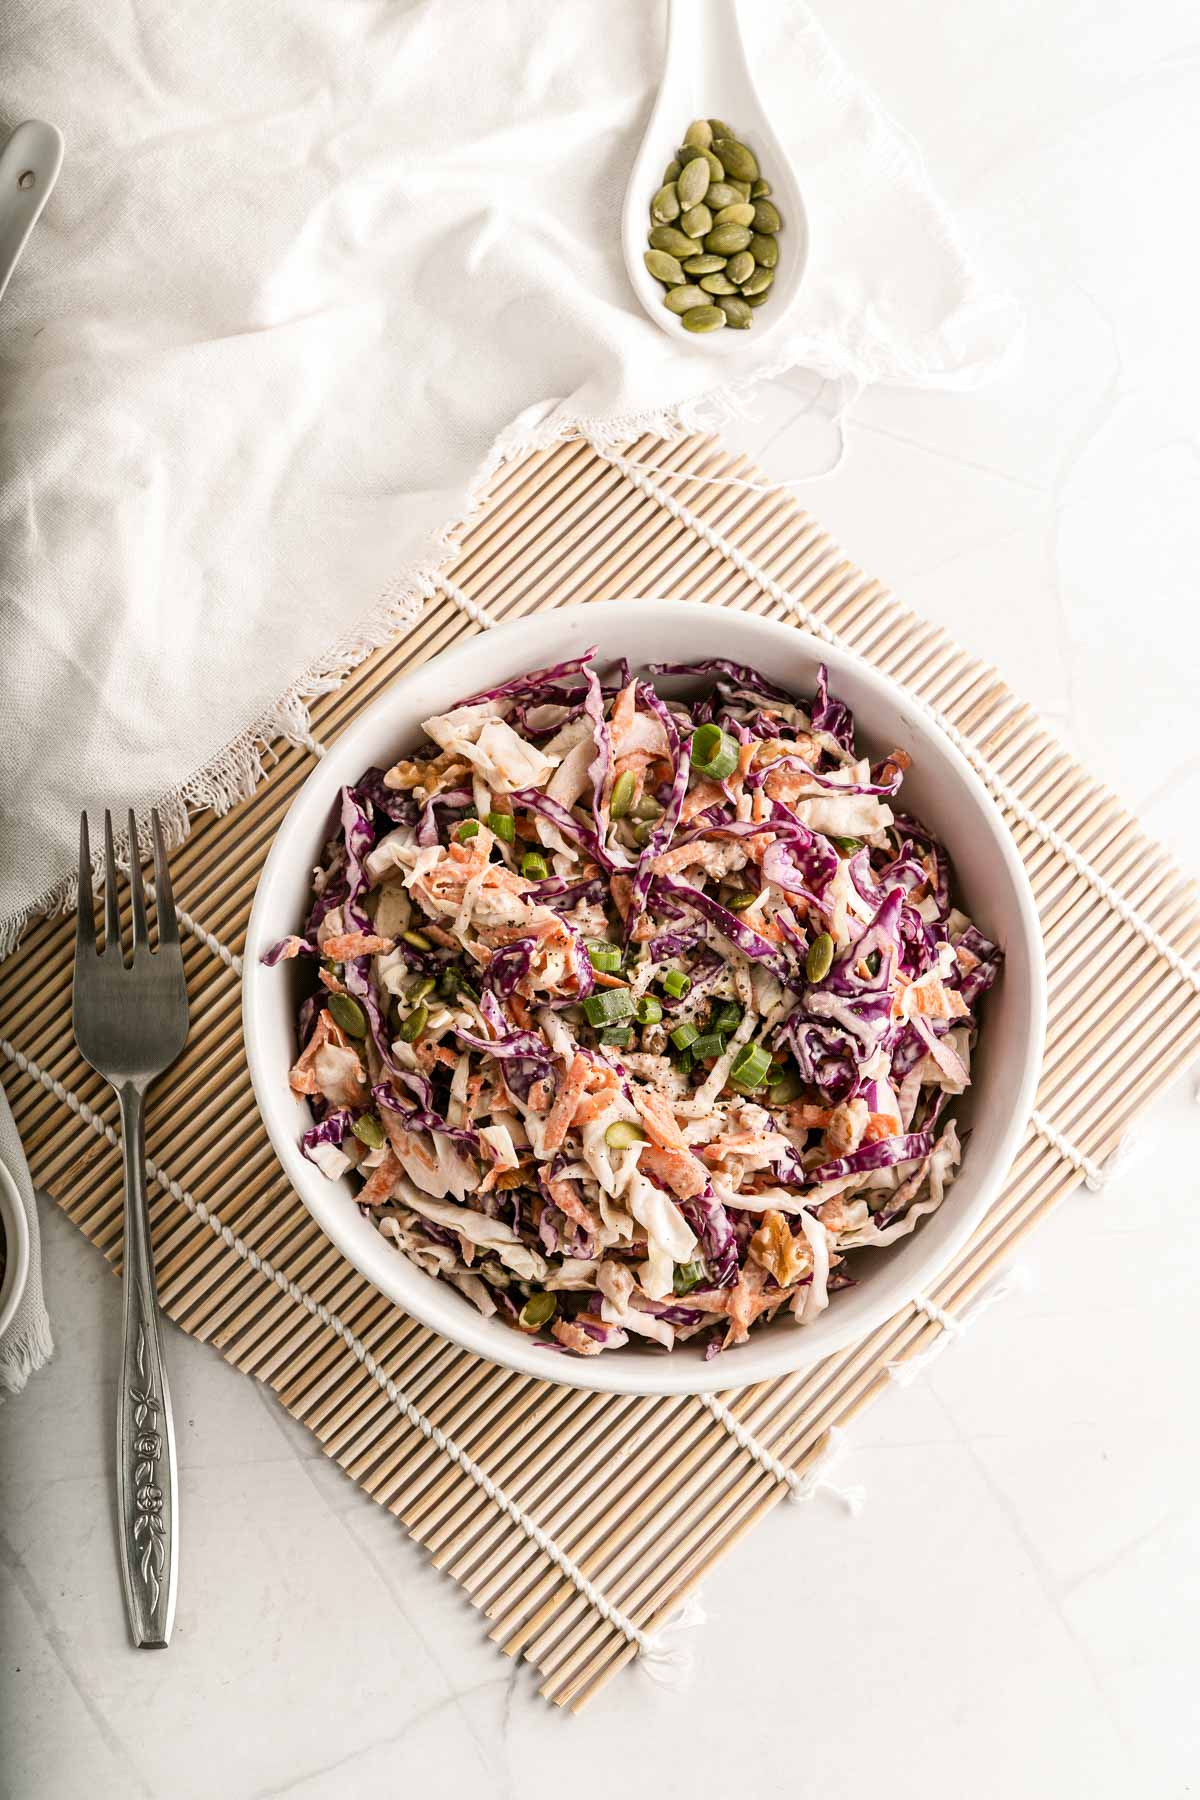 coleslaw in a bowl with a fork and pumpkin seeds